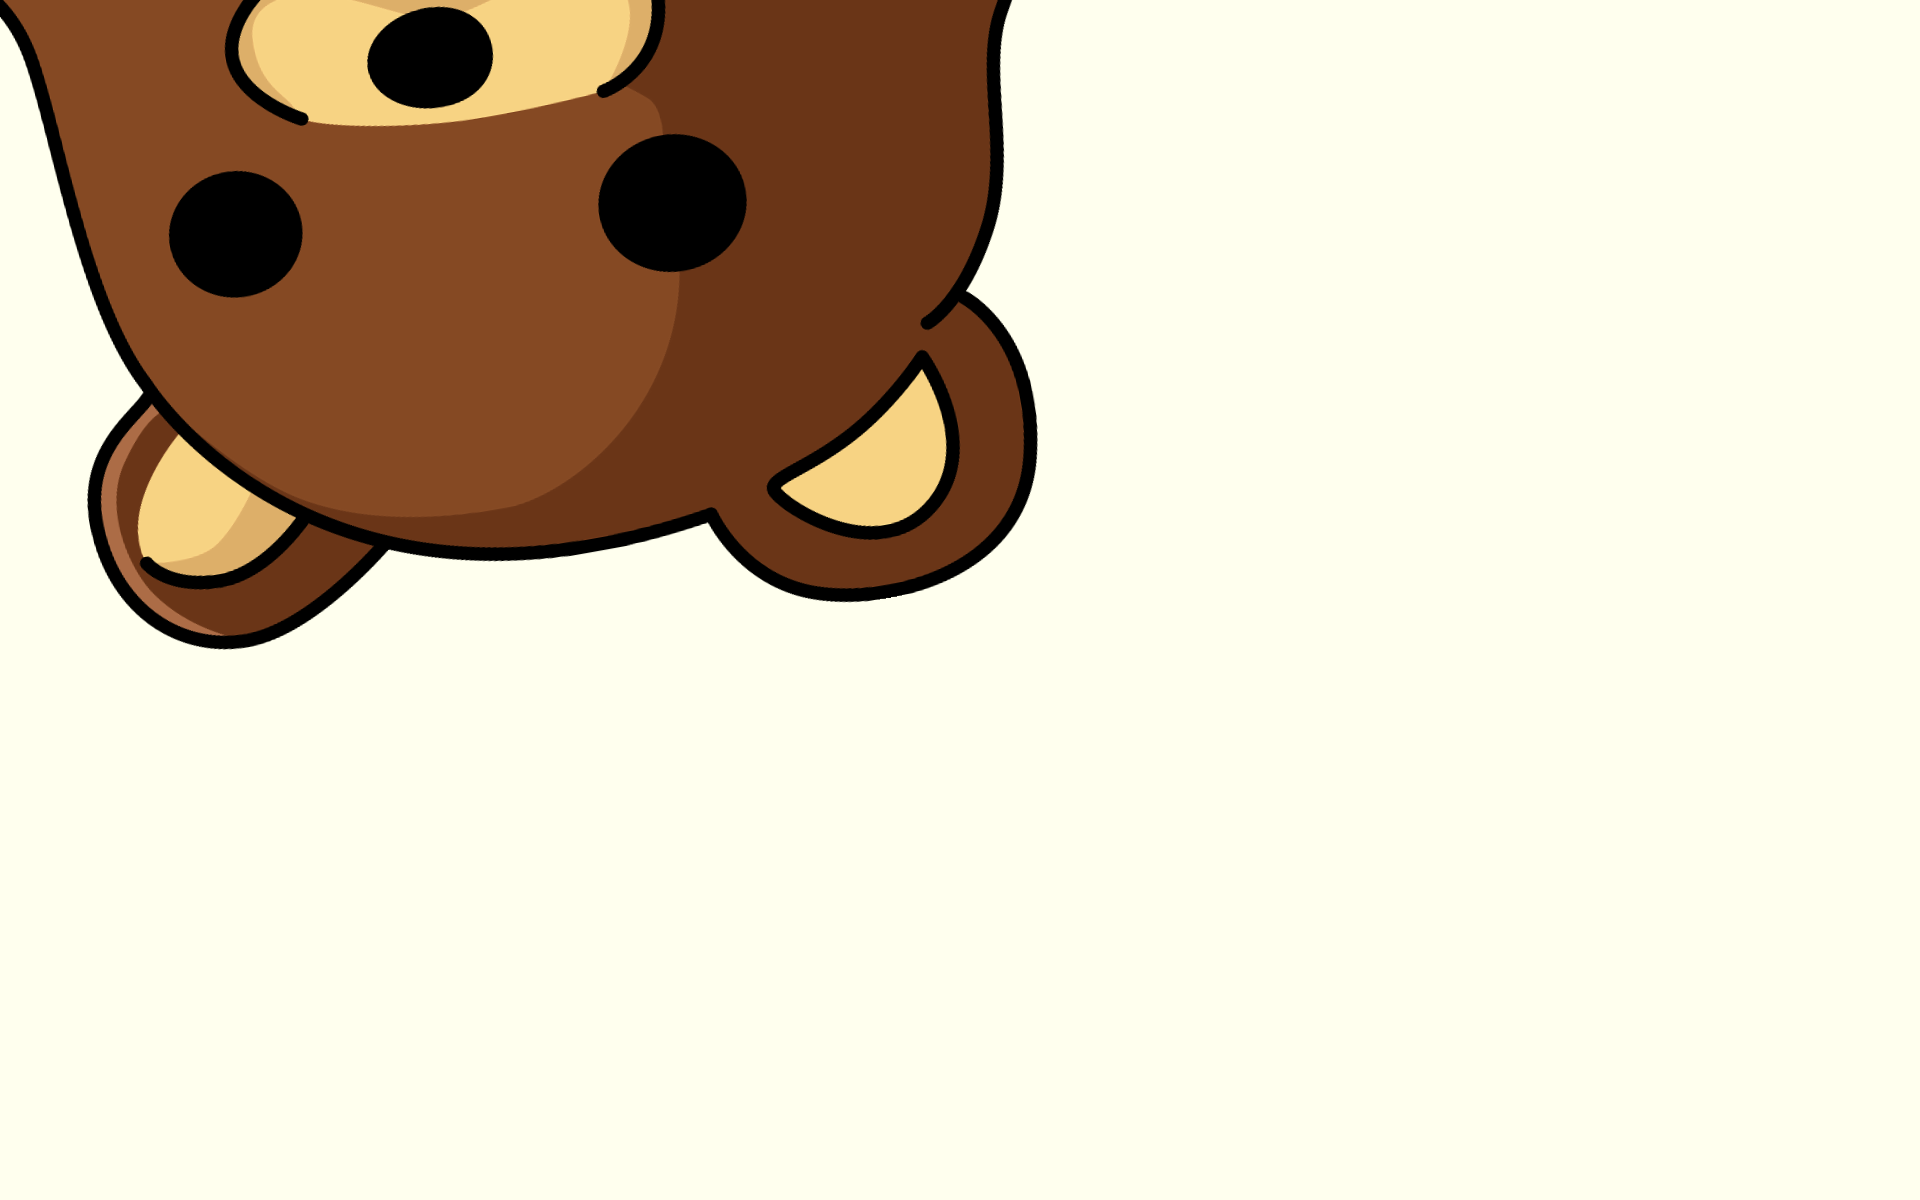 pedobear_pedo_desktop_1920x1200_wallpaper-207036.png